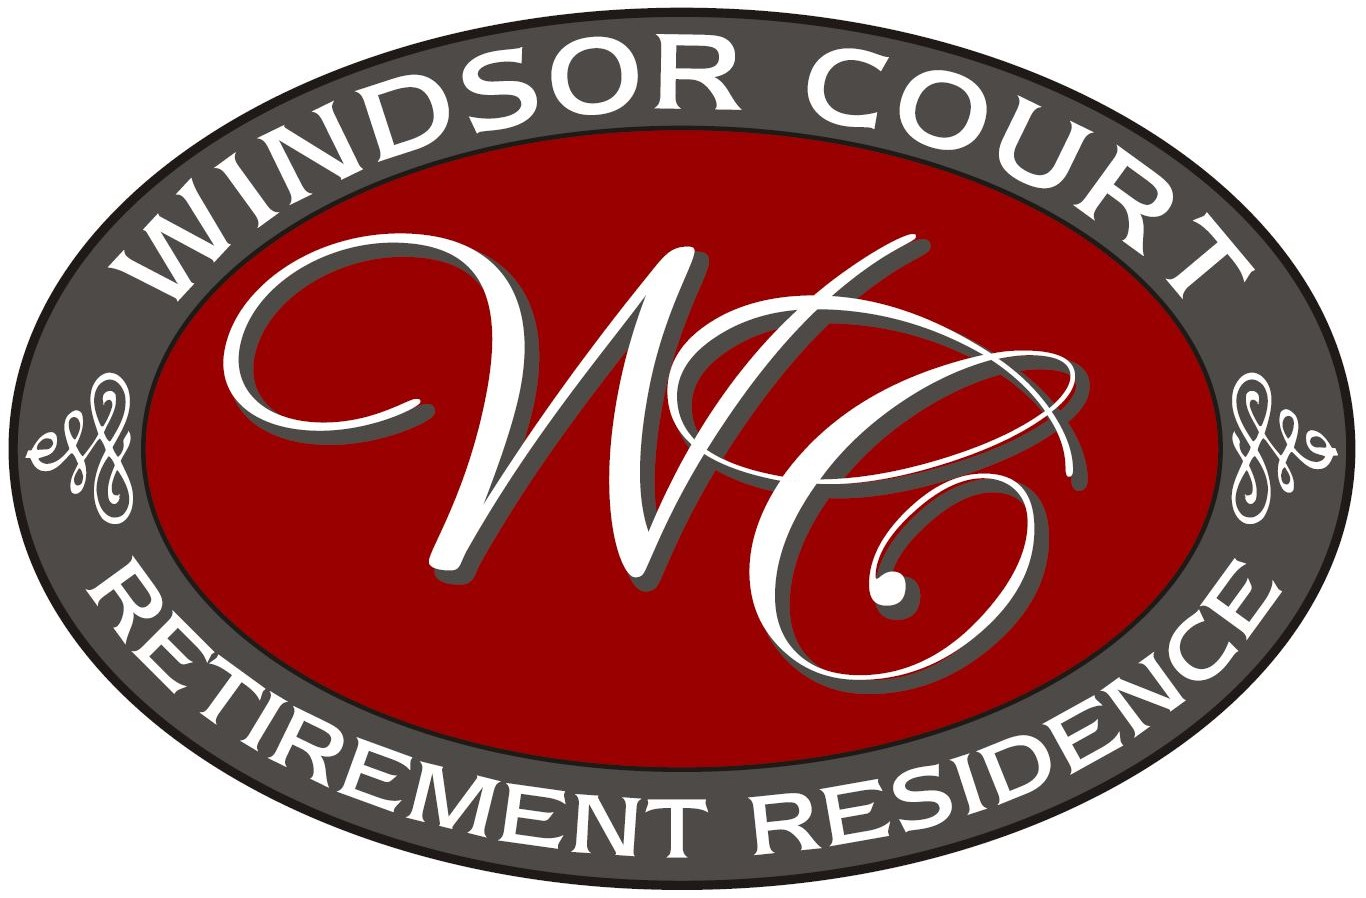 Windsor Court Retirement Residence